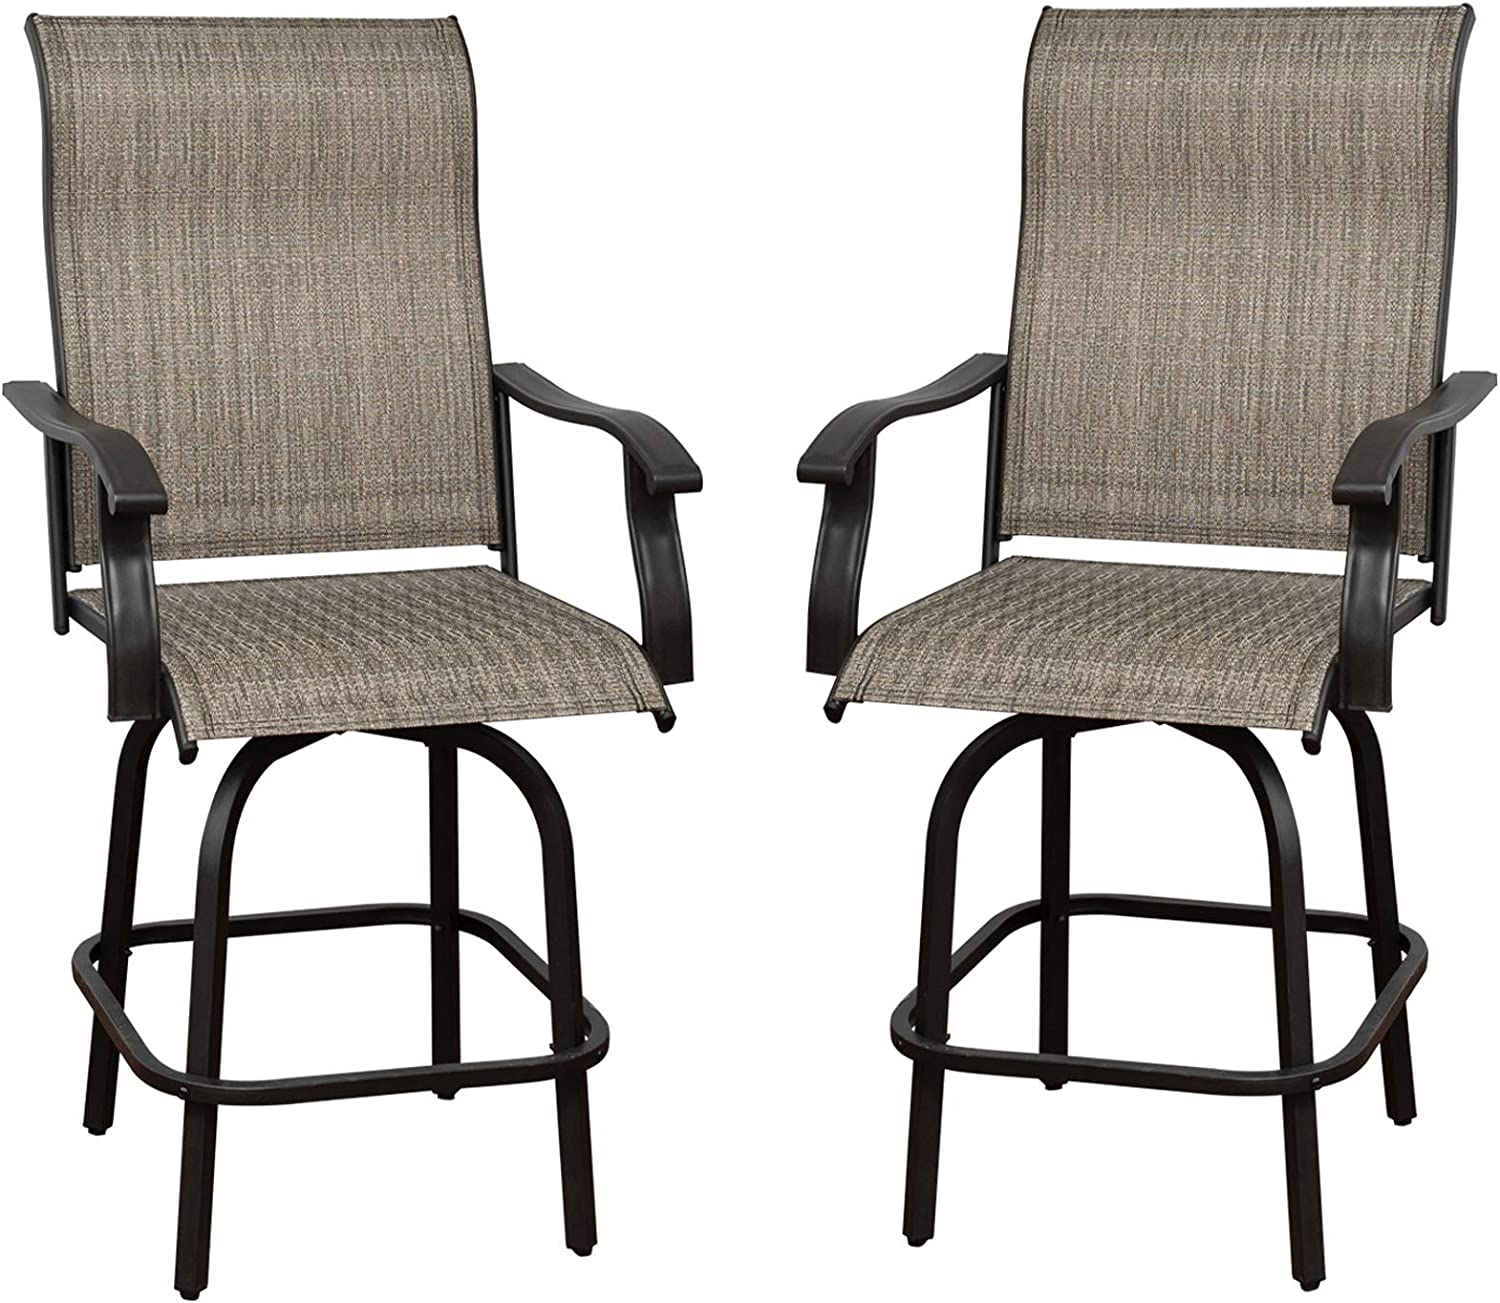 Outdoor Swivel 大注目 Bar Stools Set of Chairs - 配送員設置送料無料 T 2 Height Patio